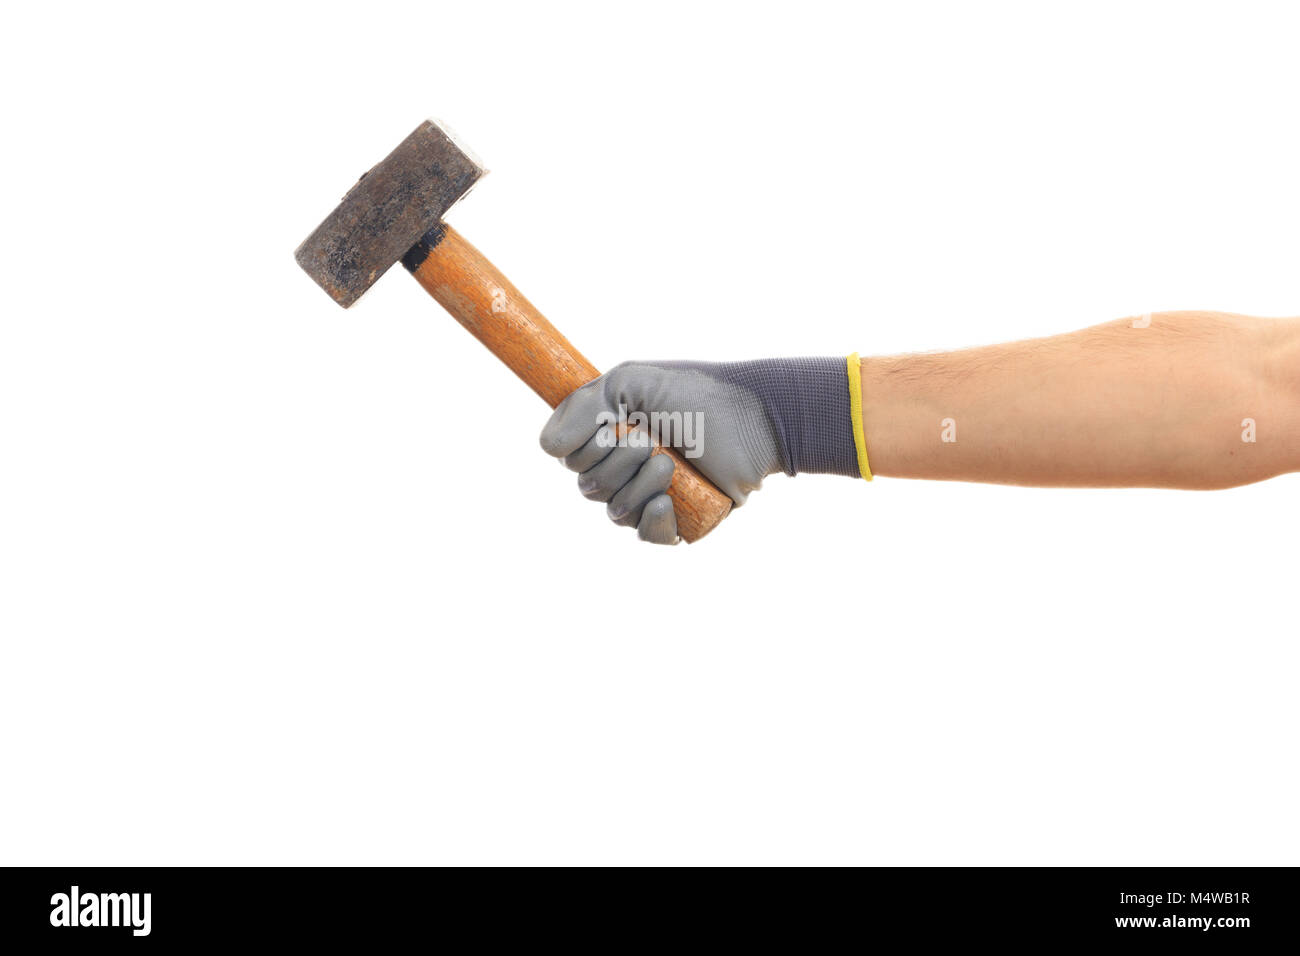 Gloved hand holding an old vintage hammer hand tool isolated on white background - Stock Image